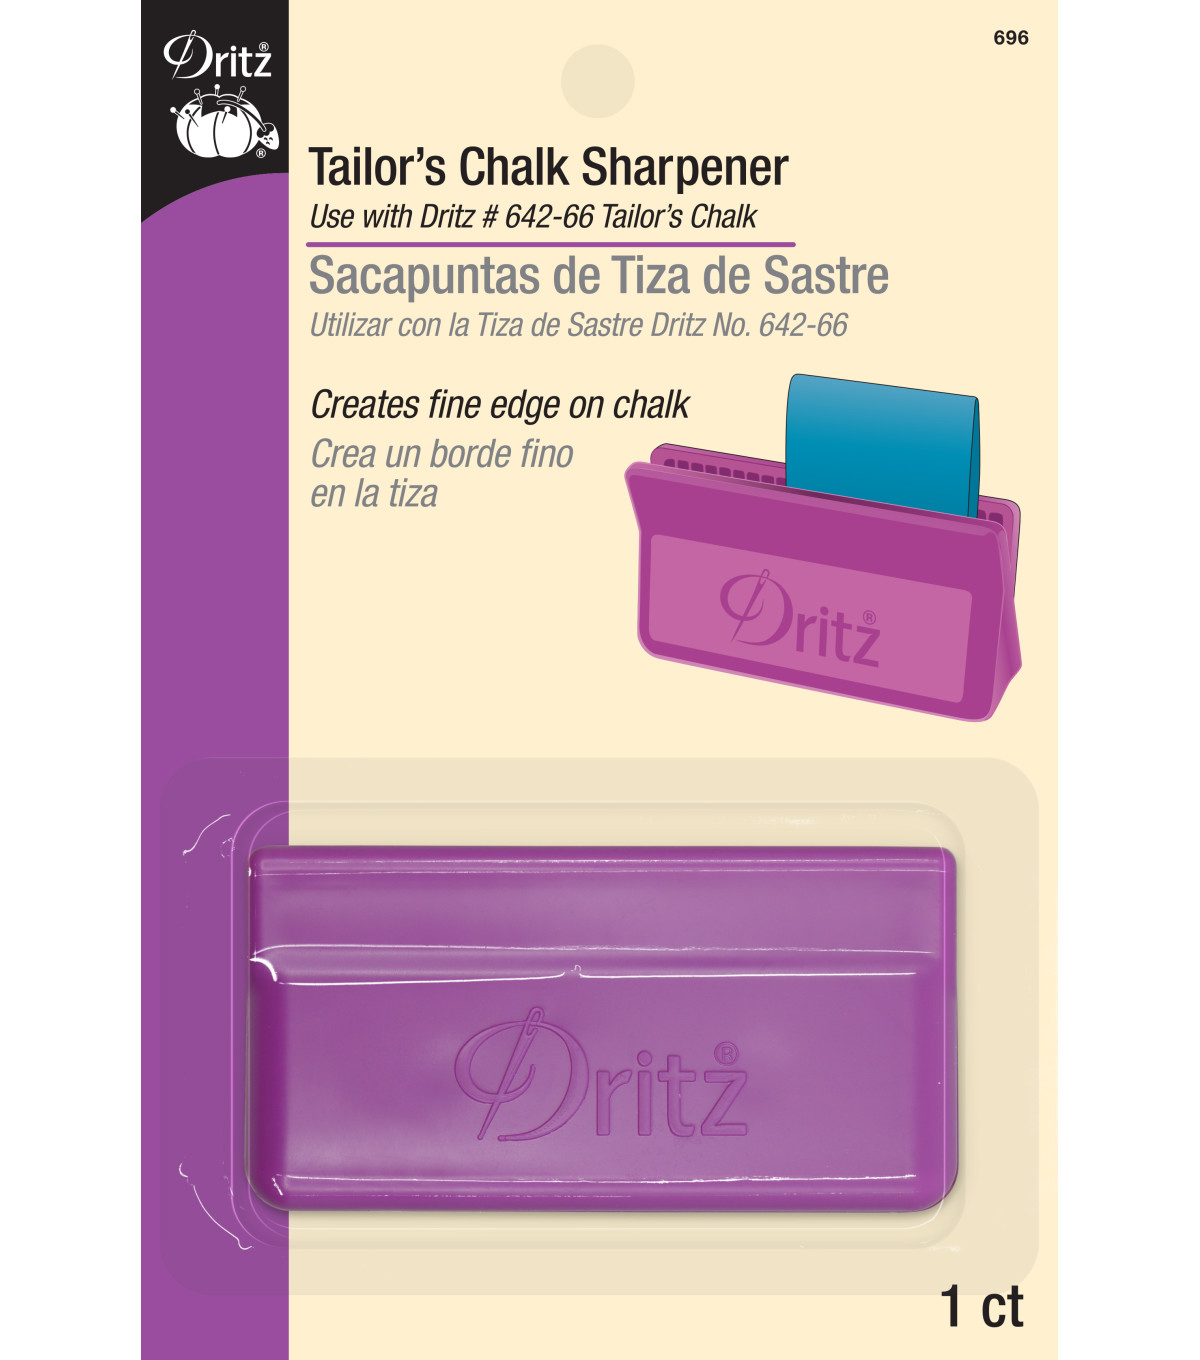 Tailors Chalk Sharpener